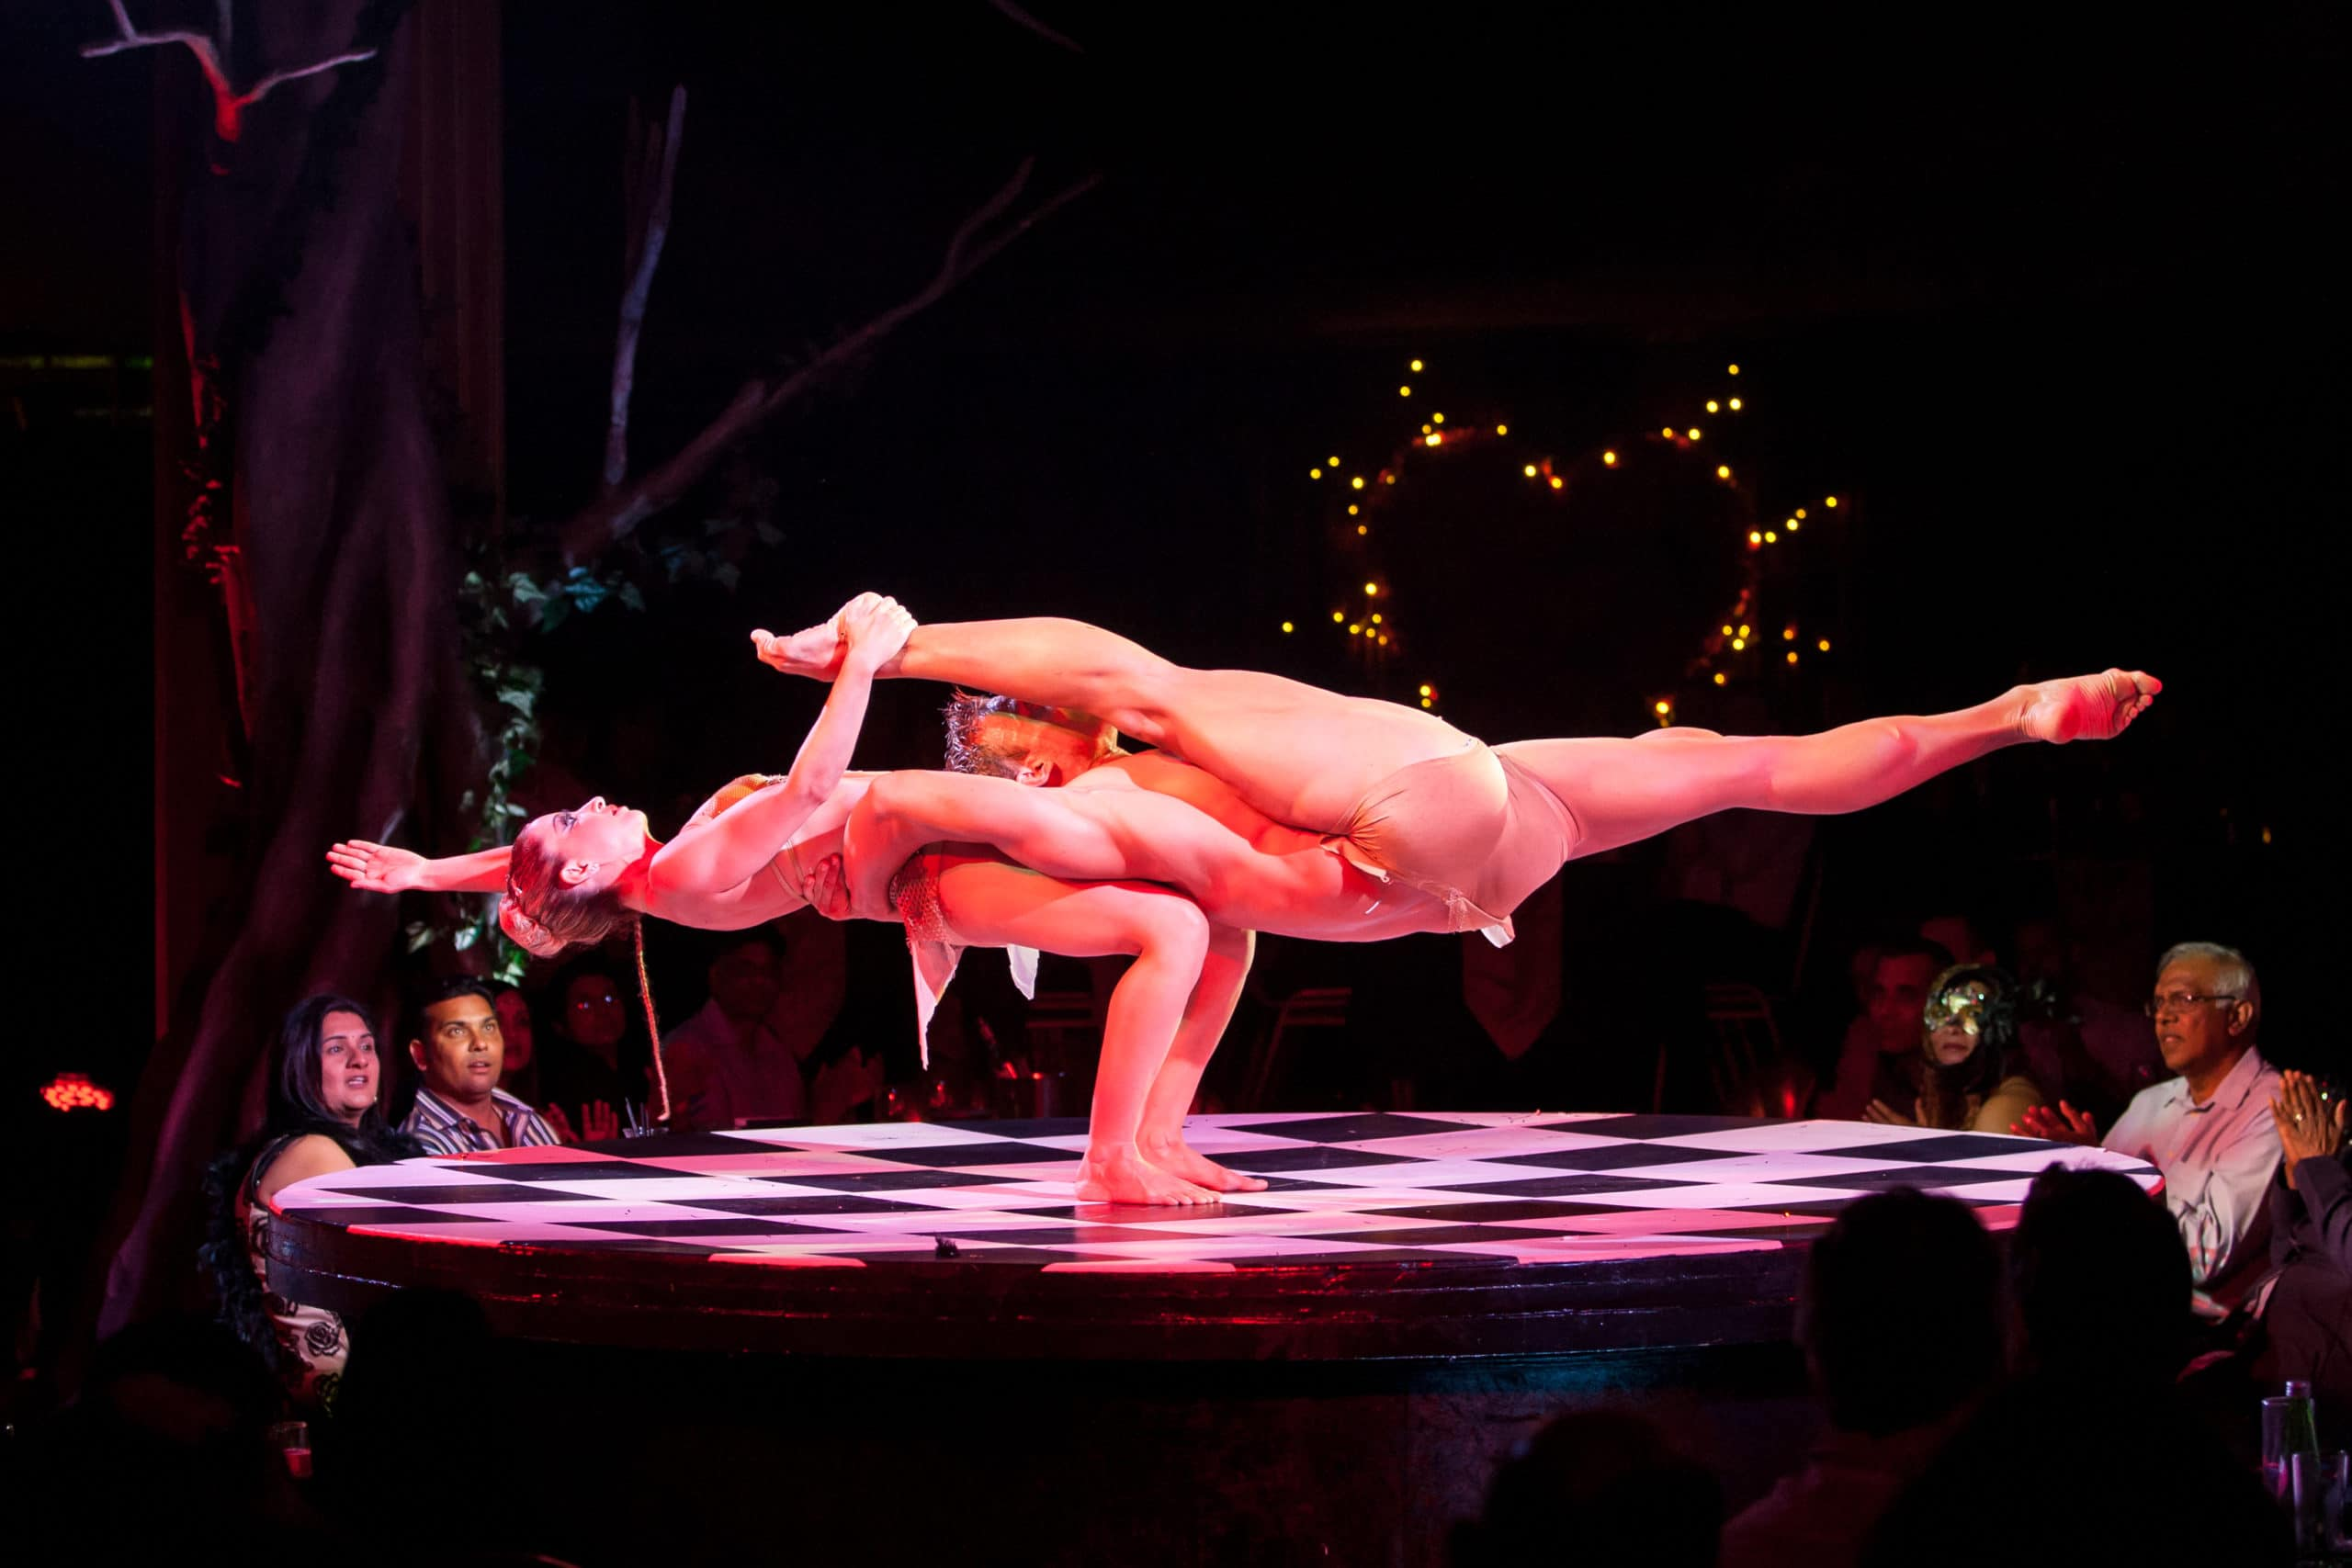 Madame Zingara at Suncoast casino